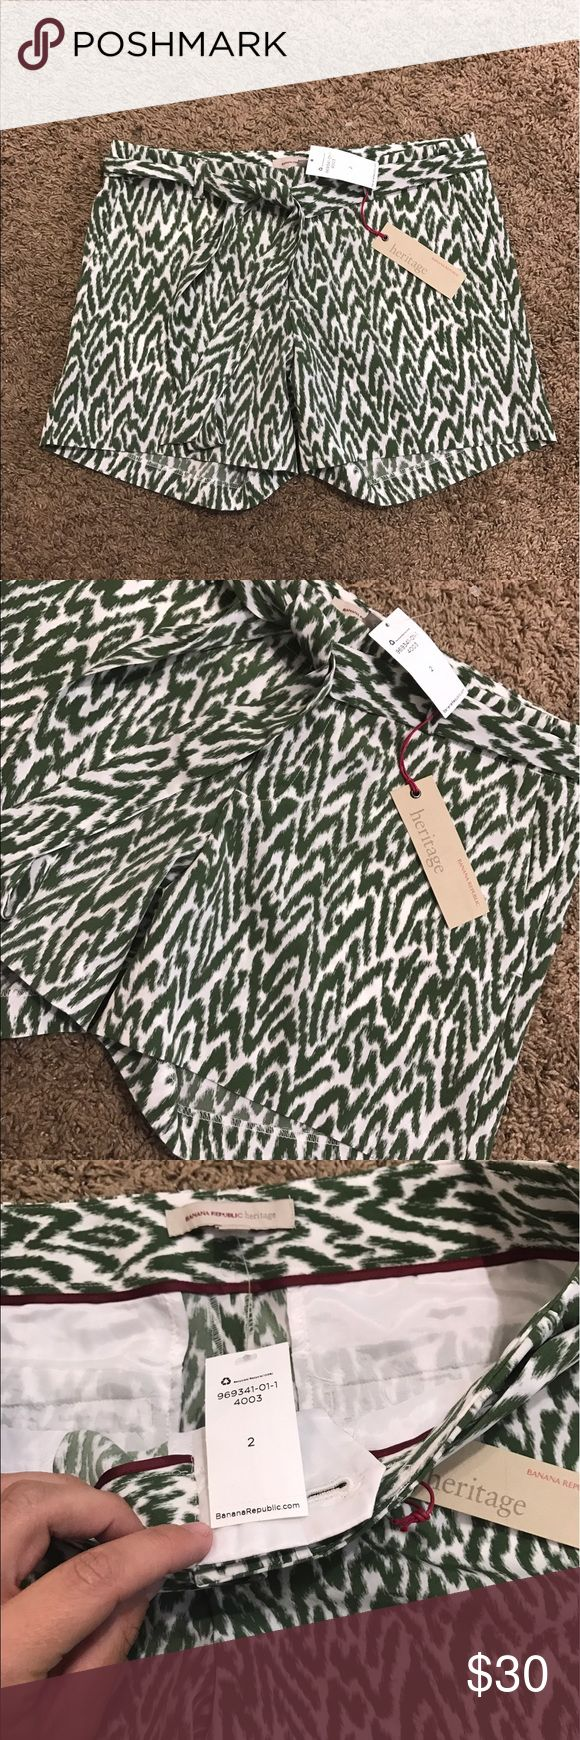 Banana republic shorts NWT Banana Republic Shorts